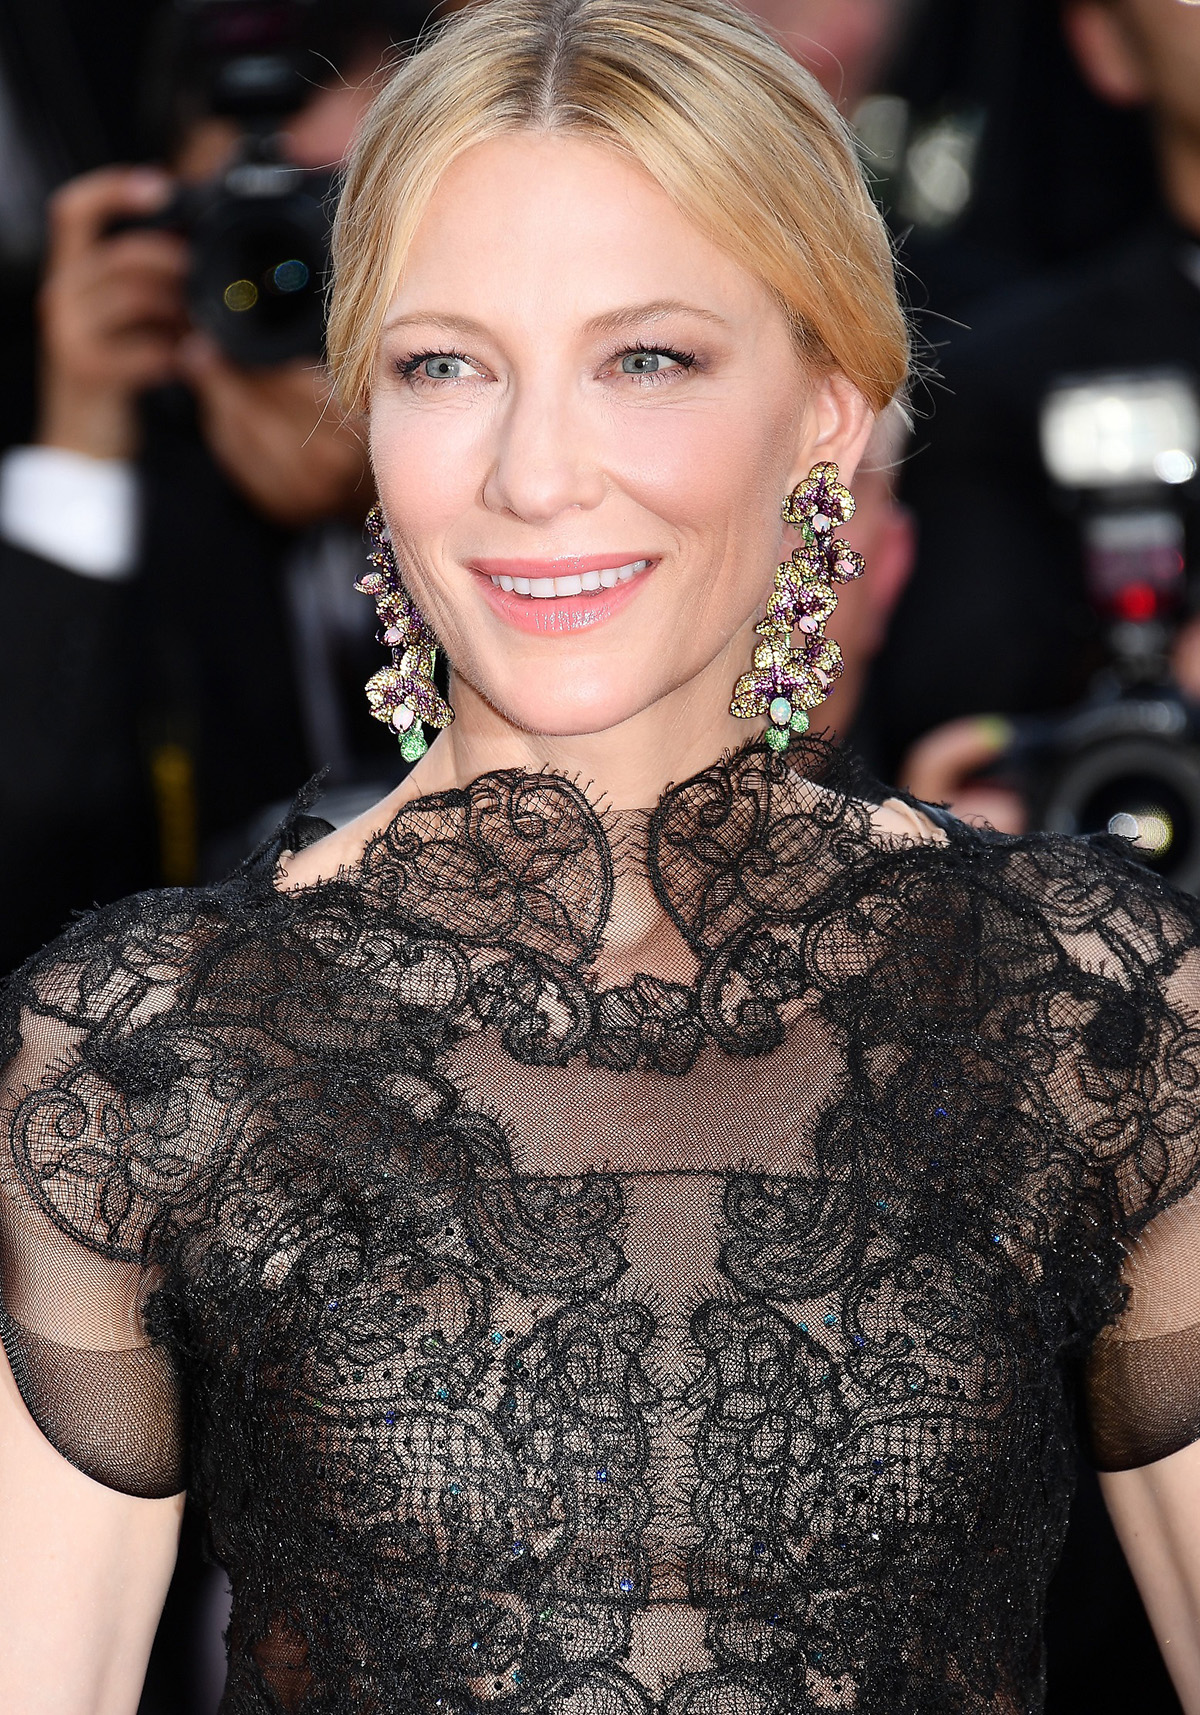 """CANNES, FRANCE - MAY 08: Jury president Cate Blanchet attends the screening of """"Everybody Knows (Todos Lo Saben)"""" and the opening gala during the 71st annual Cannes Film Festival at Palais des Festivals on May 8, 2018 in Cannes, France. (Photo by Dominique Charriau/WireImage)"""